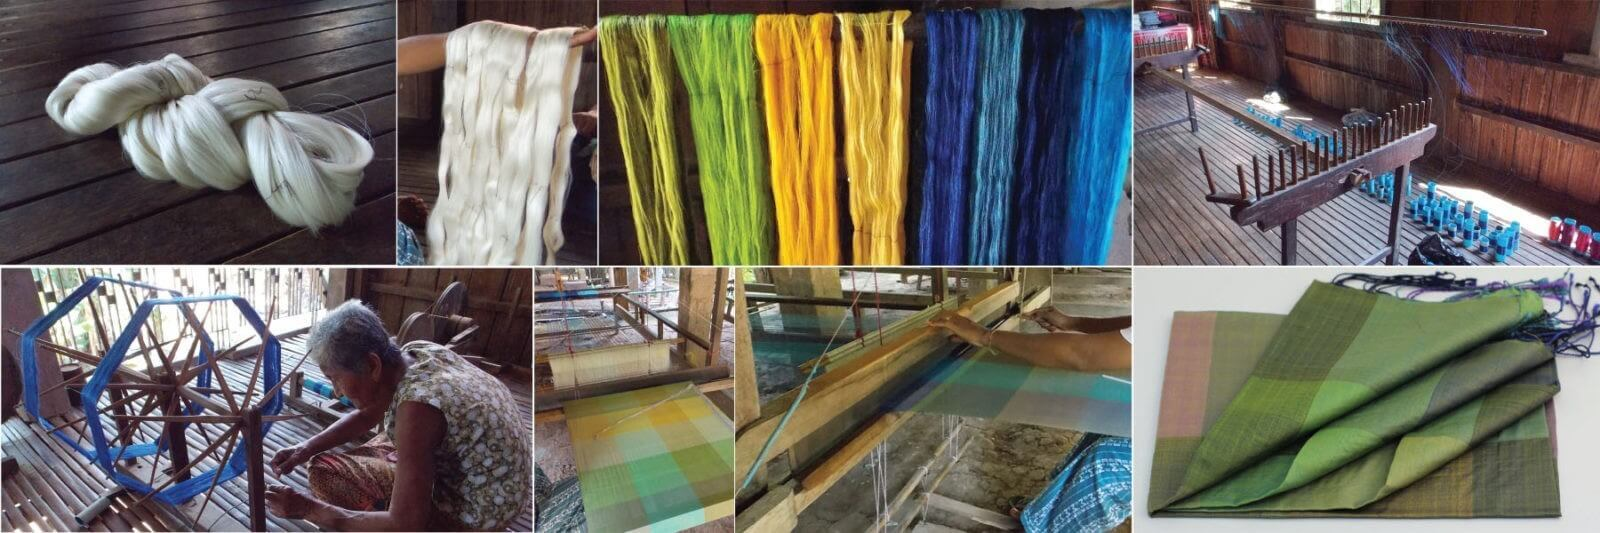 photo array fo silk weavers on About Us page or product page copy copy